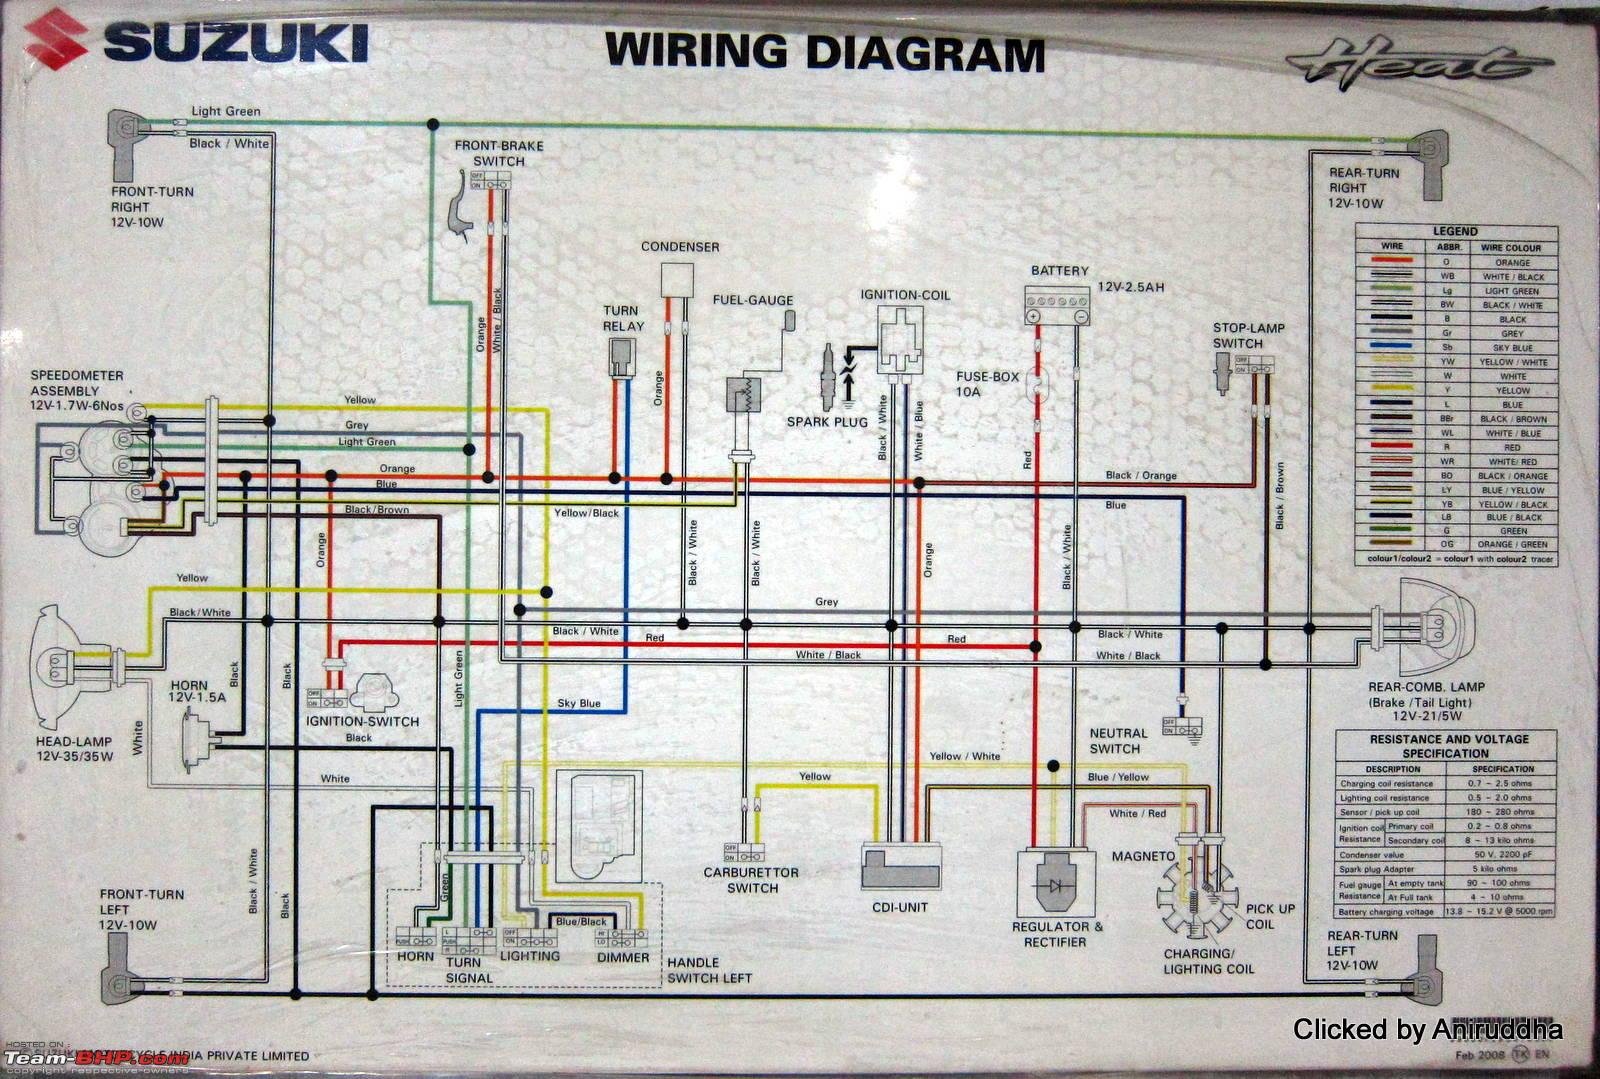 9A81F Honda Valkyrie Wiring Diagram   Wiring Resources on victory battery diagram, victory air conditioning, victory rear suspension, victory motorcycle horn wiring, eureka vacuum parts diagram, victory parts diagram, victory parts schematics, victory honda, victory fuel system diagram, victory exhaust, victory accessories, victory oil diagram, blizzard 5500 wire diagram, 05 f150 ecu diagram, paragon defrost clock wire diagram, victory engine diagram,